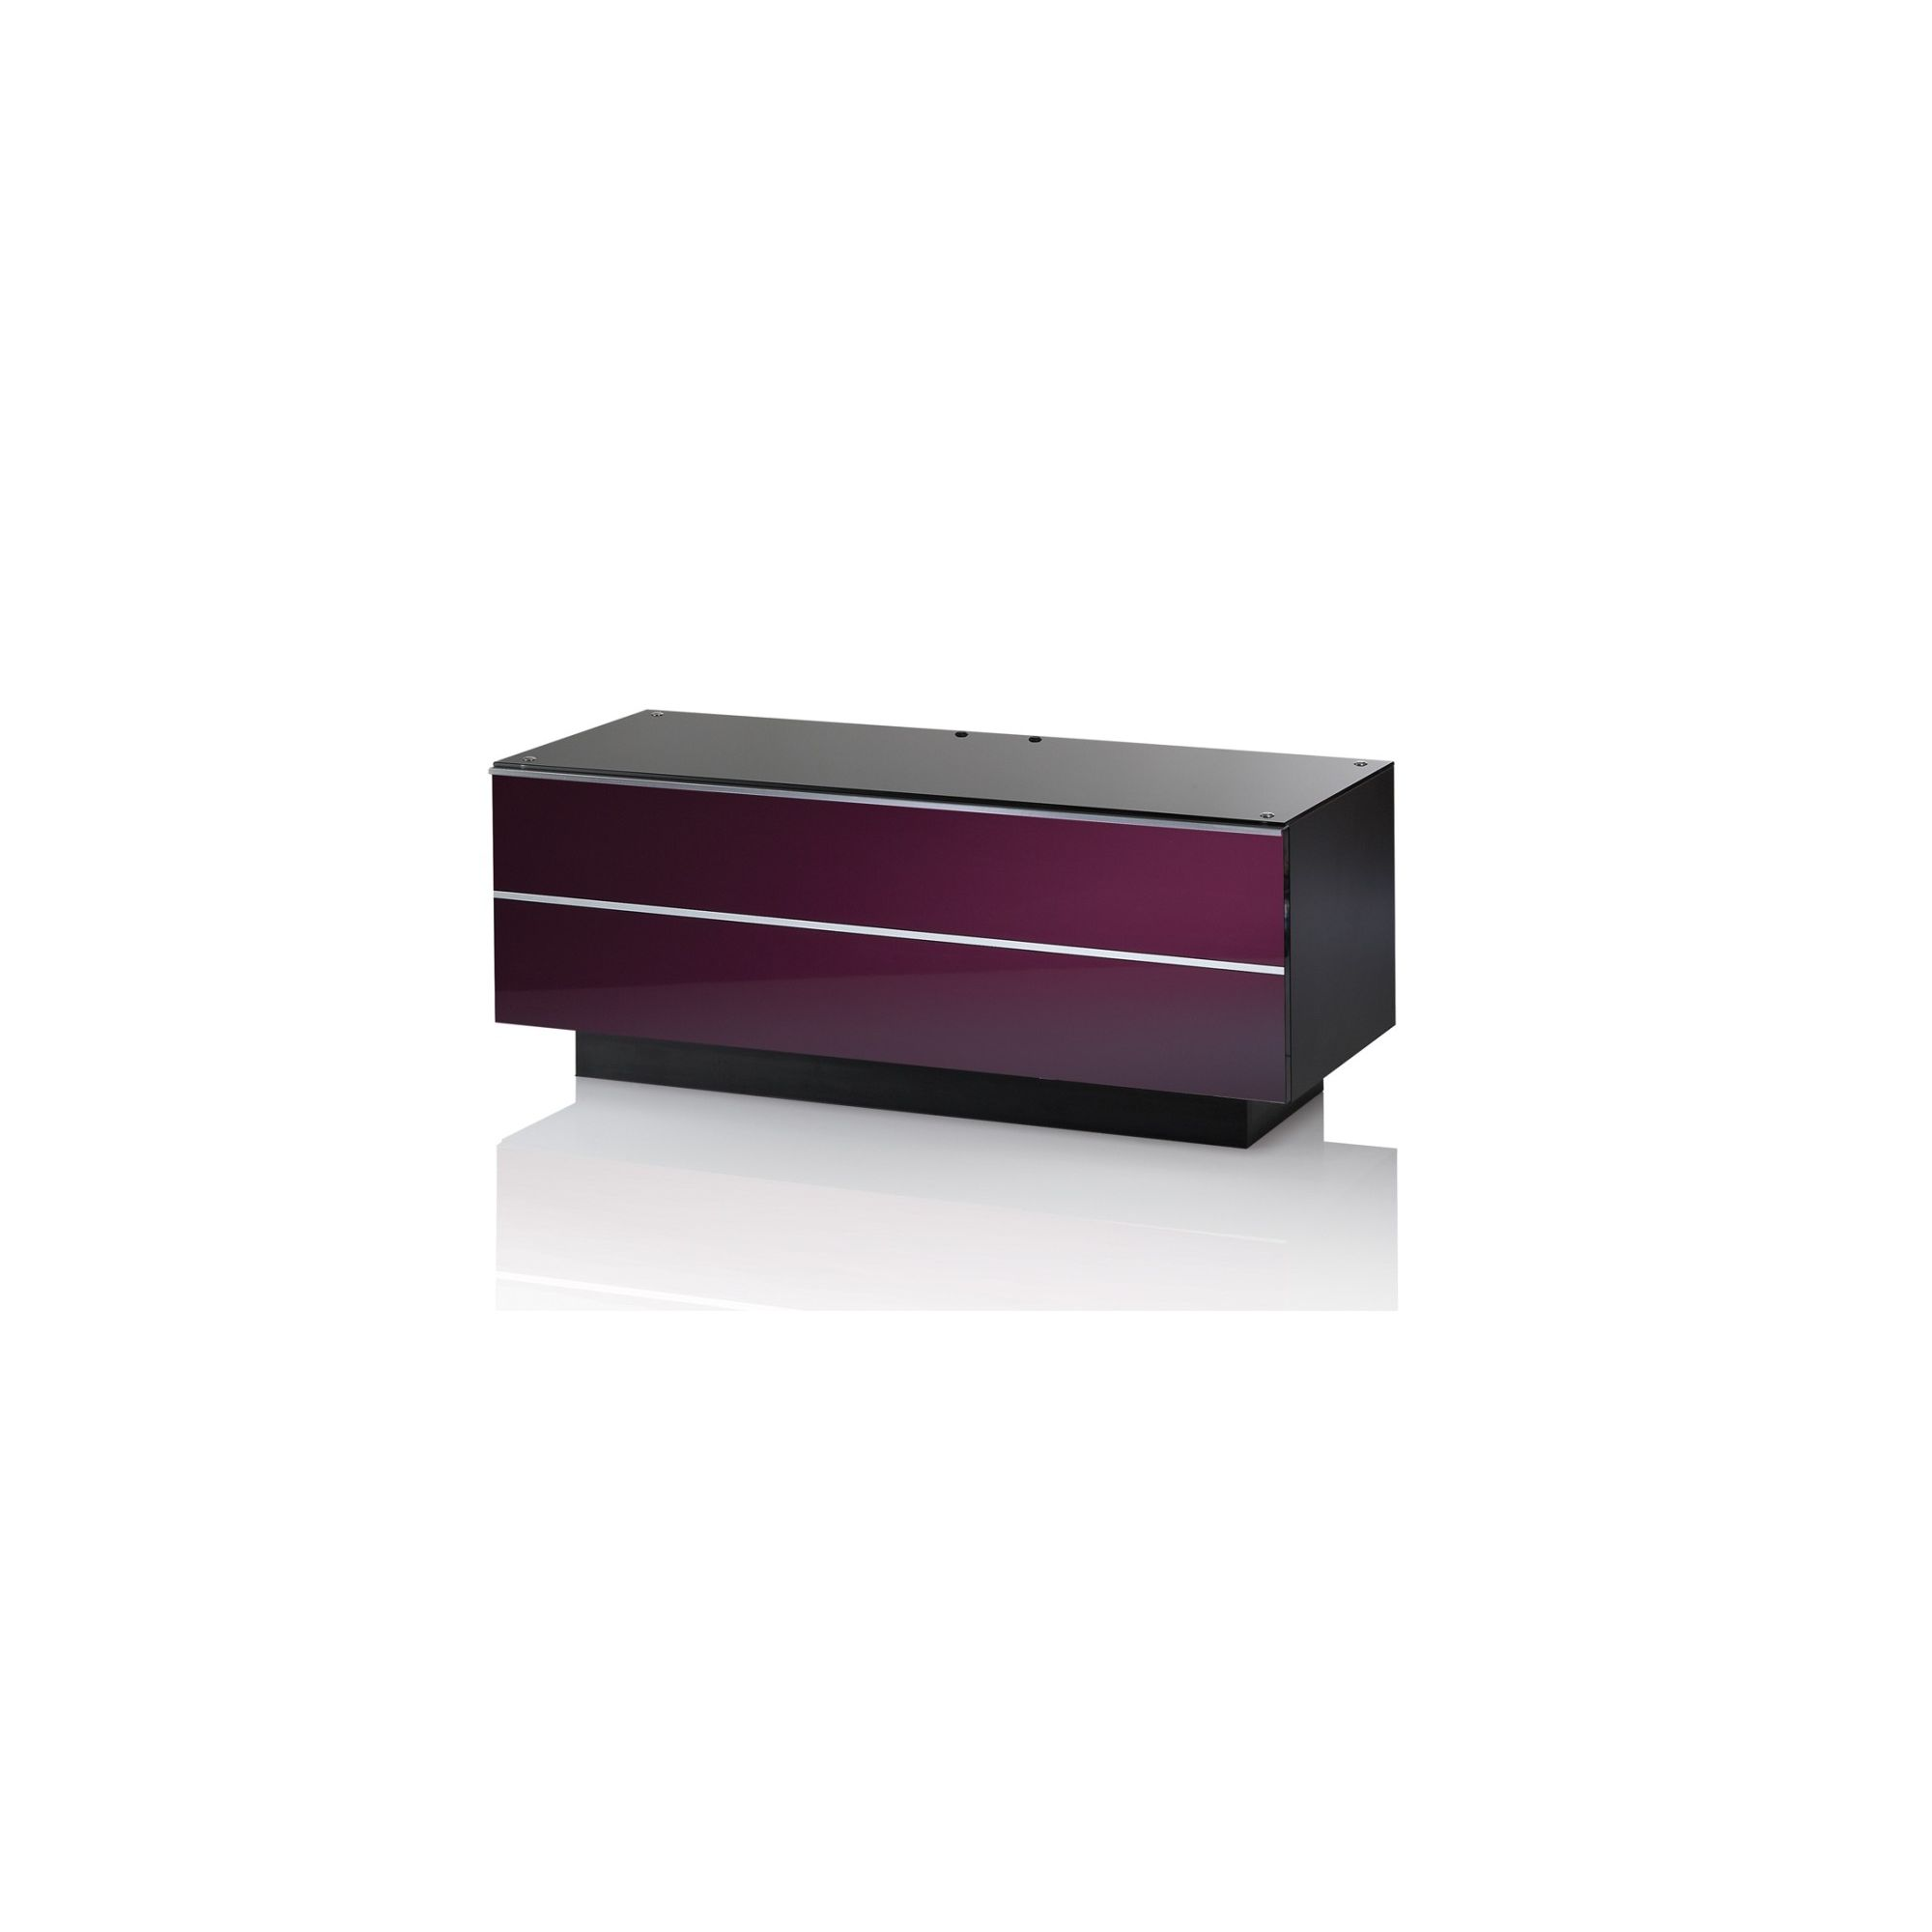 UK-CF G Series GS TV Stand - 110cm - Damson at Tesco Direct